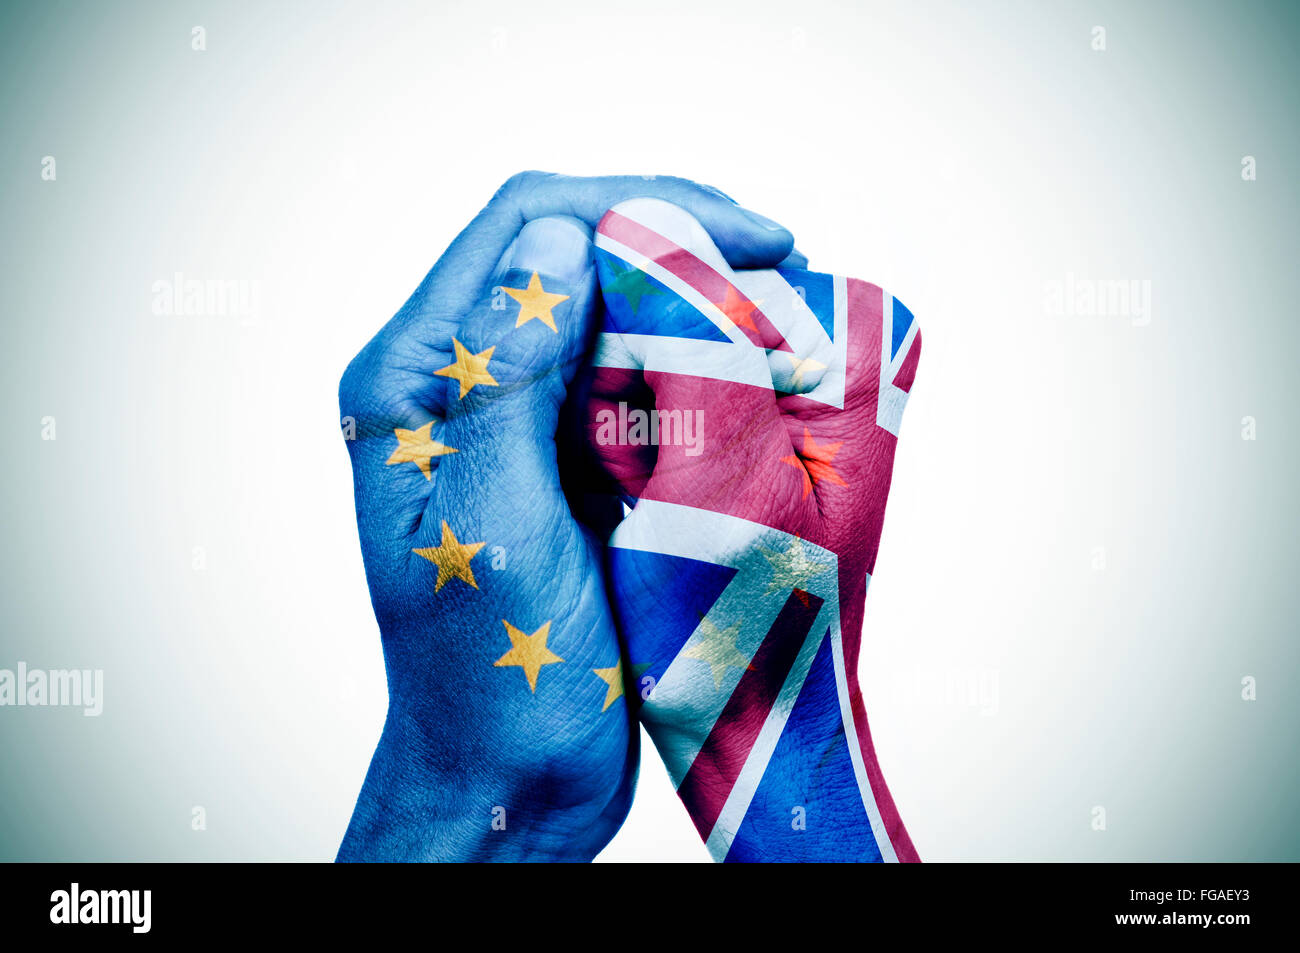 hand patterned with the flag of the European Community envelops another hand patterned with the flag of the United Stock Photo